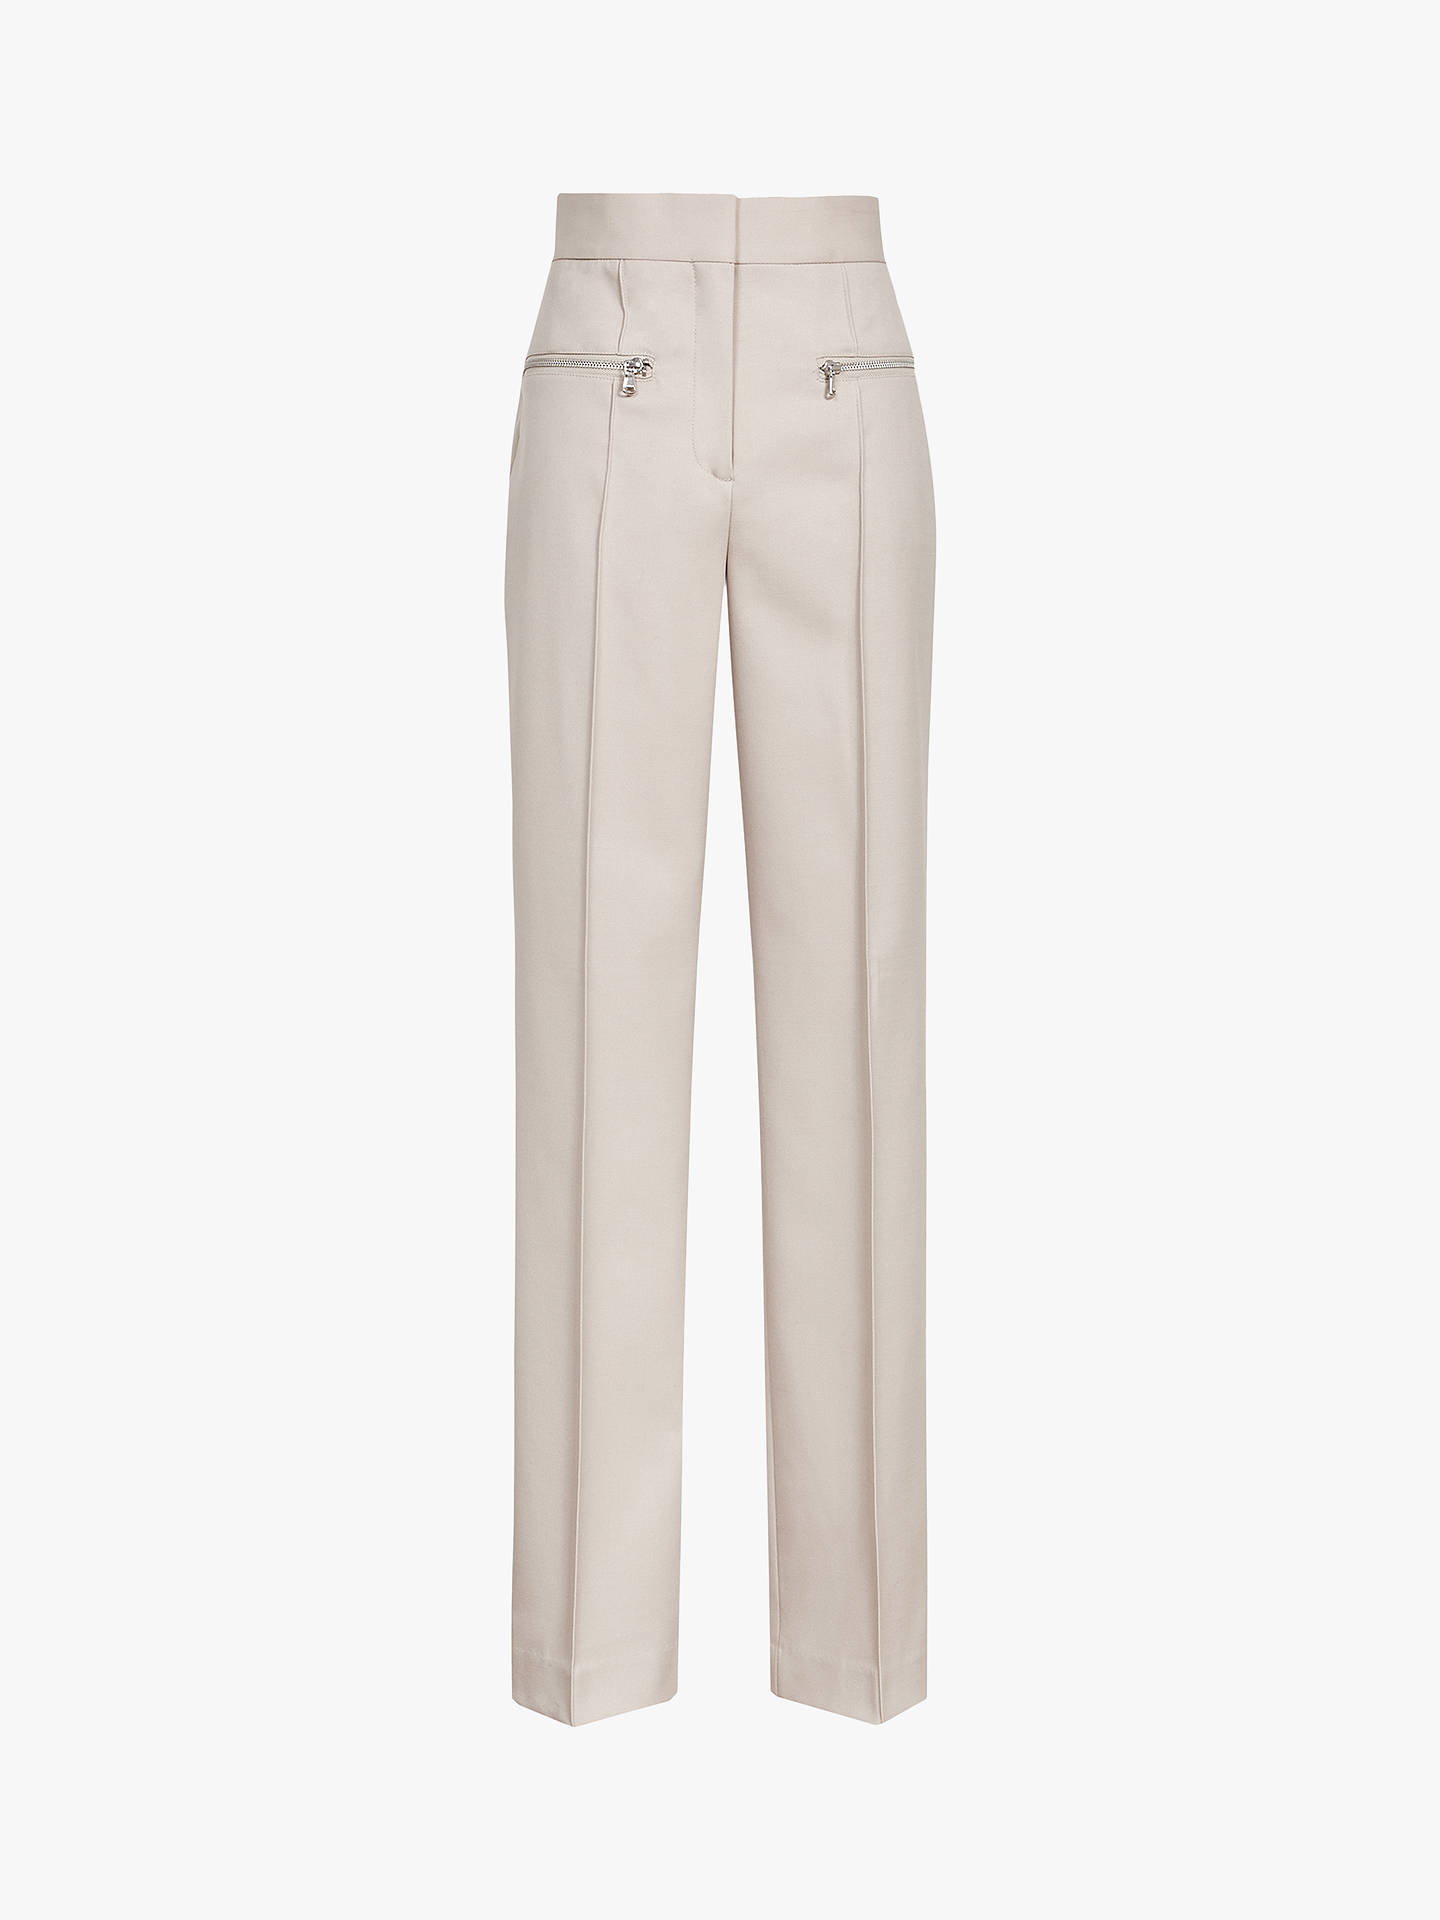 Buy Reiss Miller Zip Detail Wide Leg Trousers, Stone, 6 Online at johnlewis.com